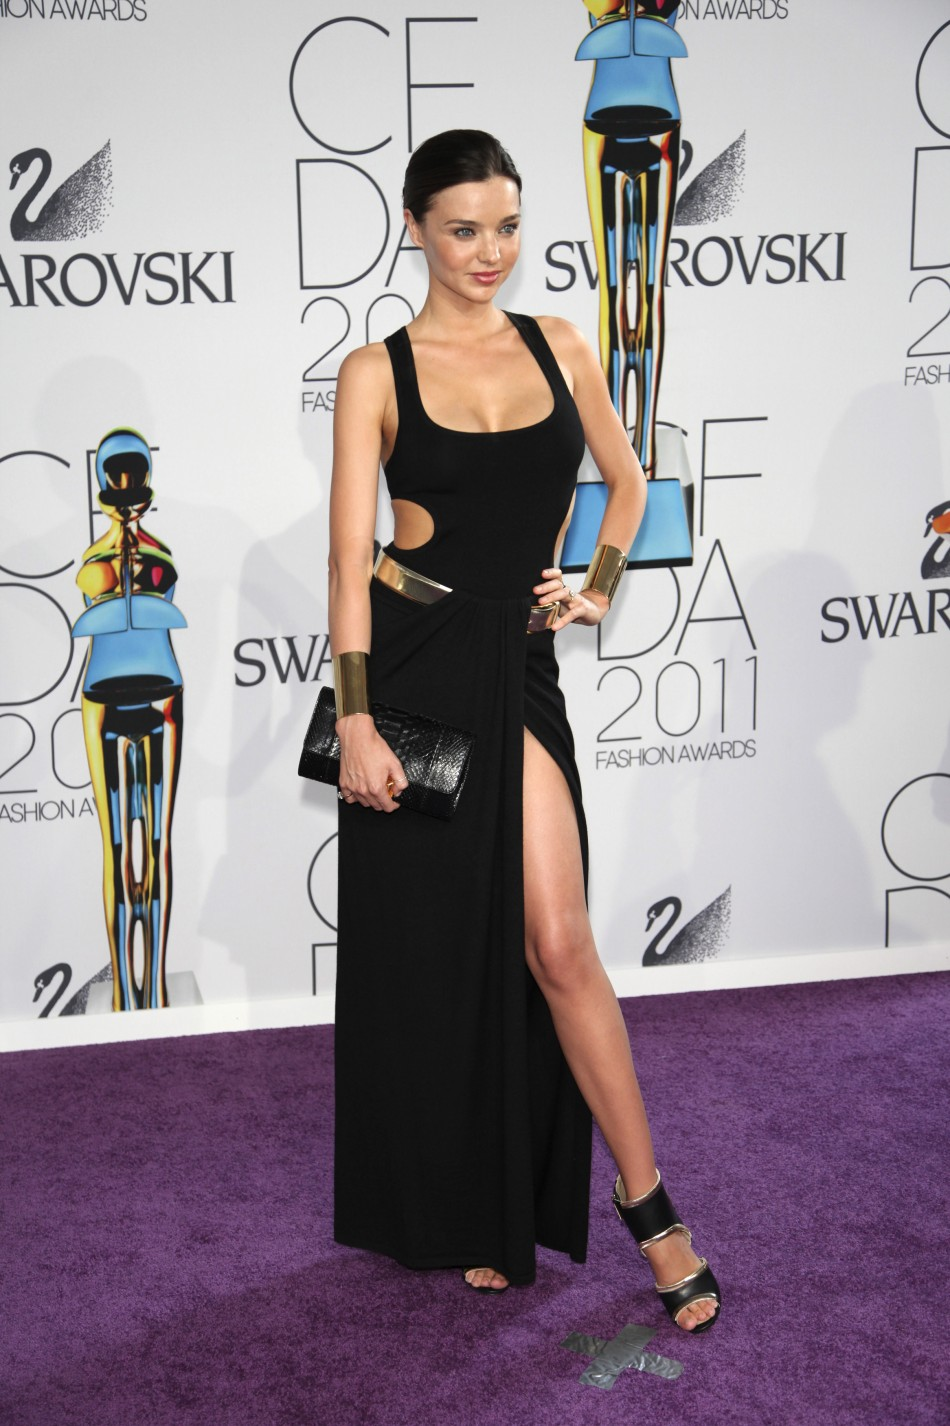 Miranda Kerr poses on the red carpet at the CFDA Fashion awards at the Lincoln Centers Alice Tully Hall in New York City